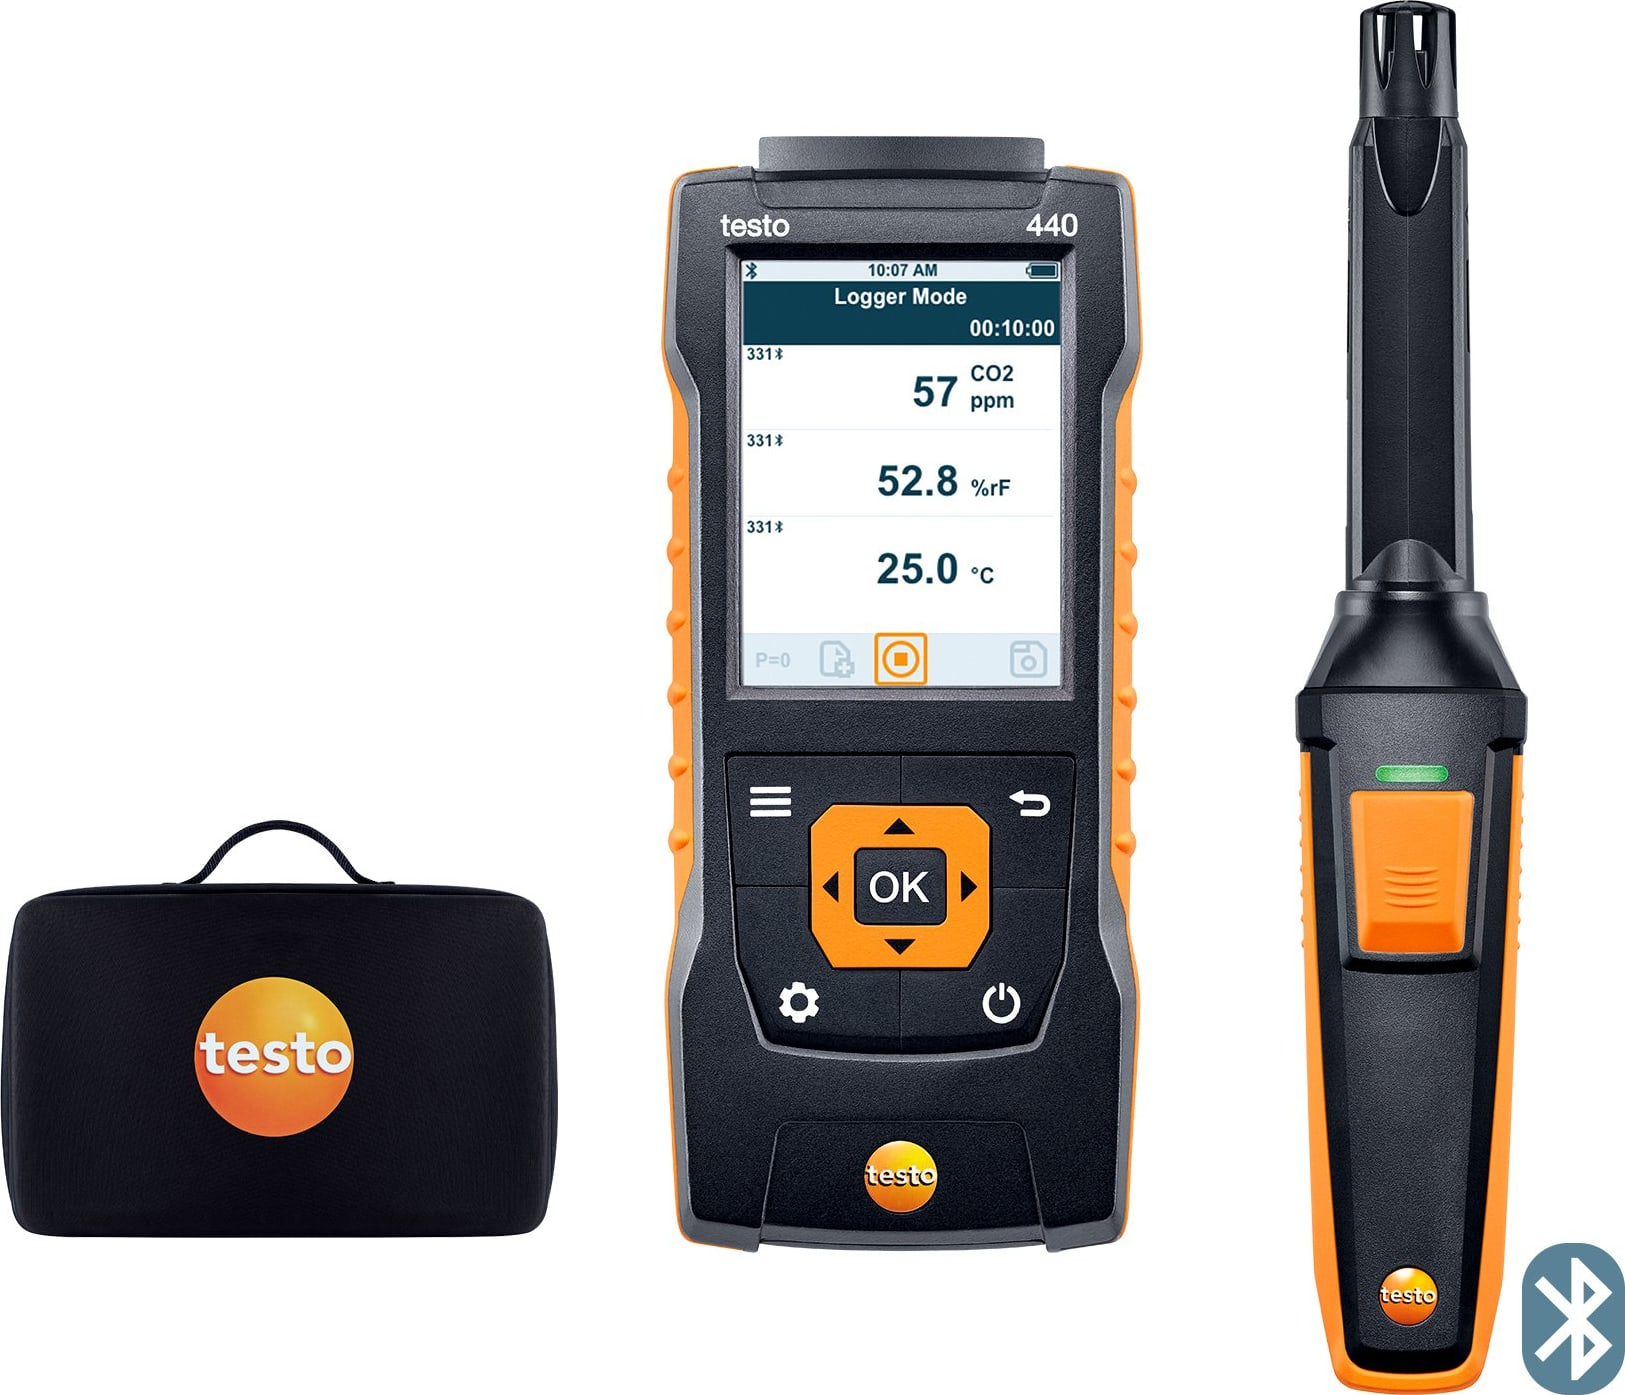 Testo 440 CO2 Kit with Bluetooth - Part Number 0563 4405